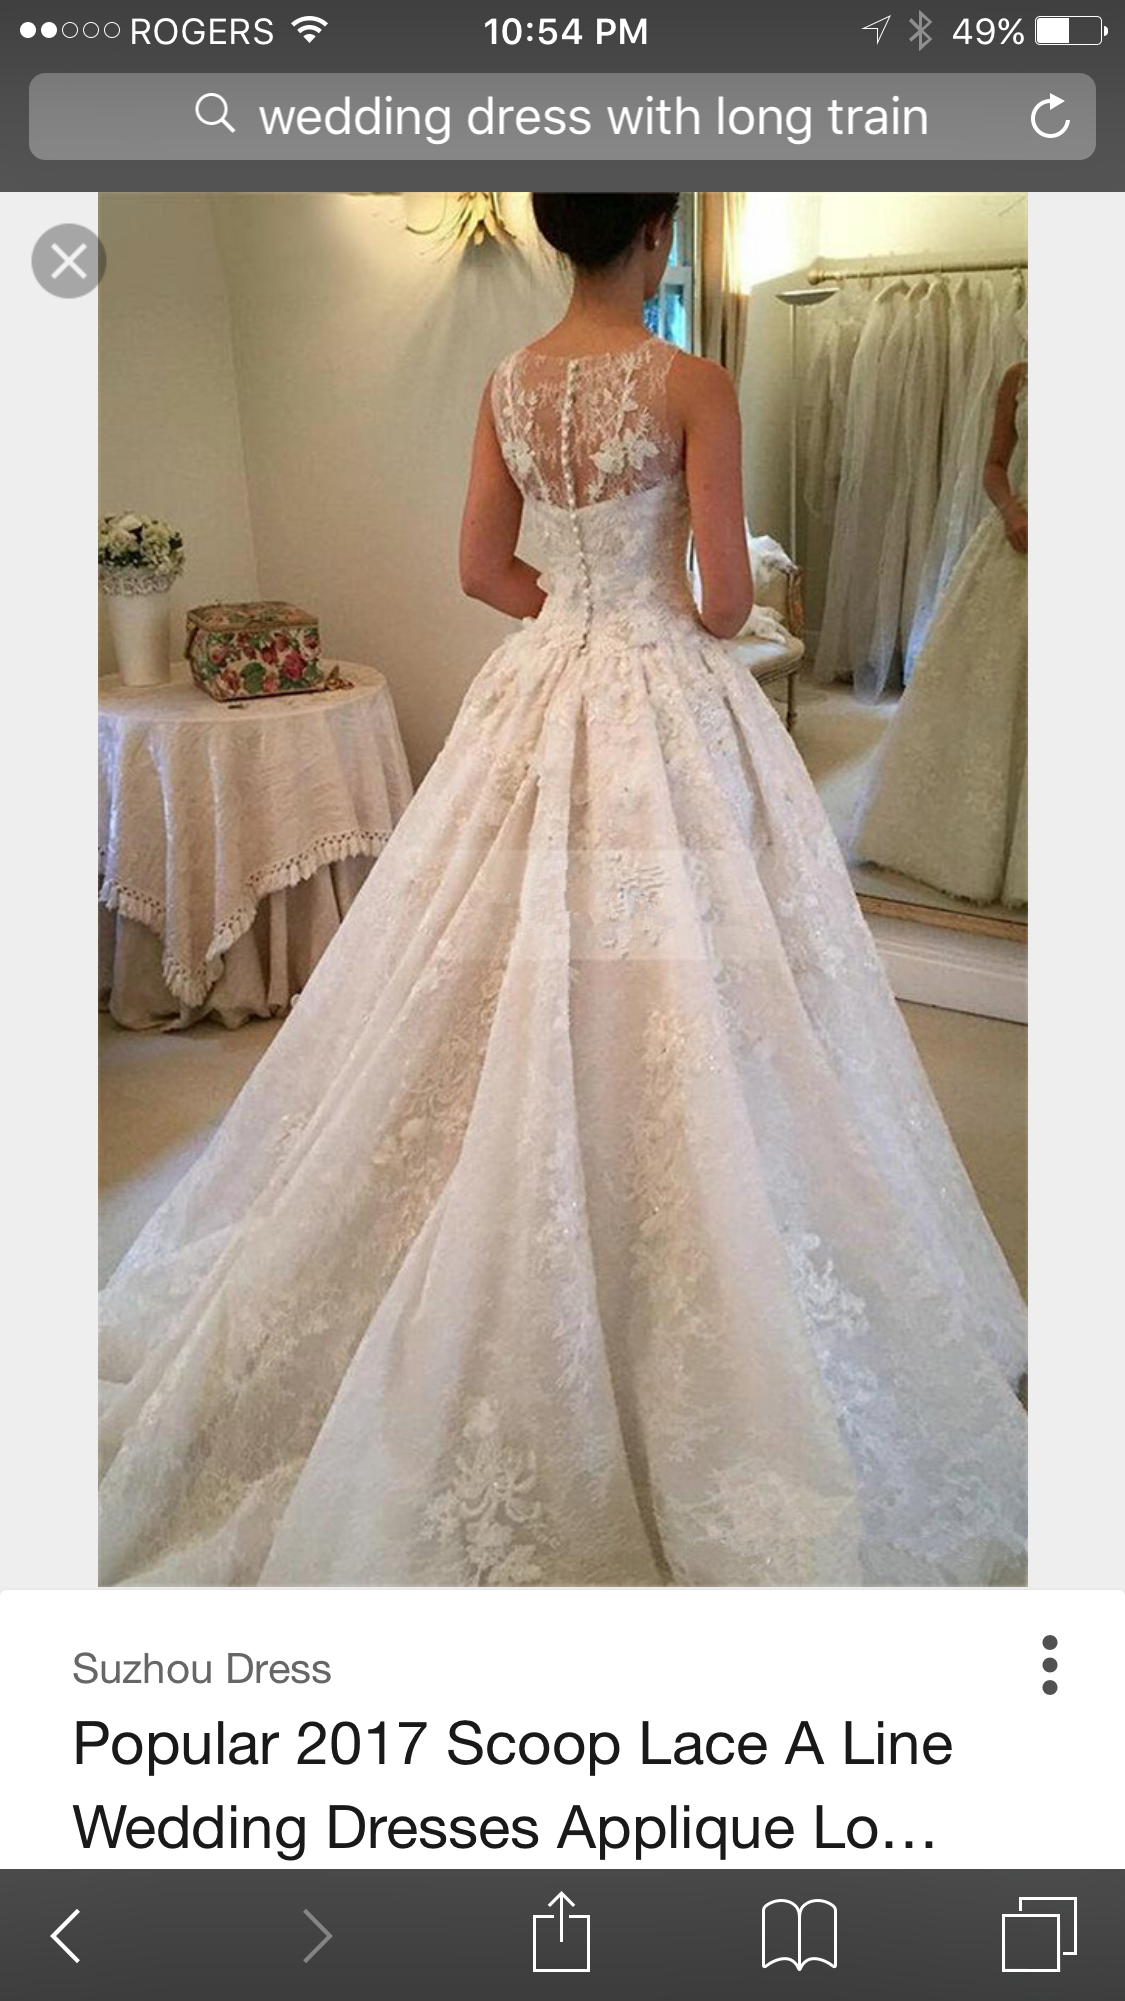 Pin by Gail S on Wedding dresses | Pinterest | Wedding dress and ...